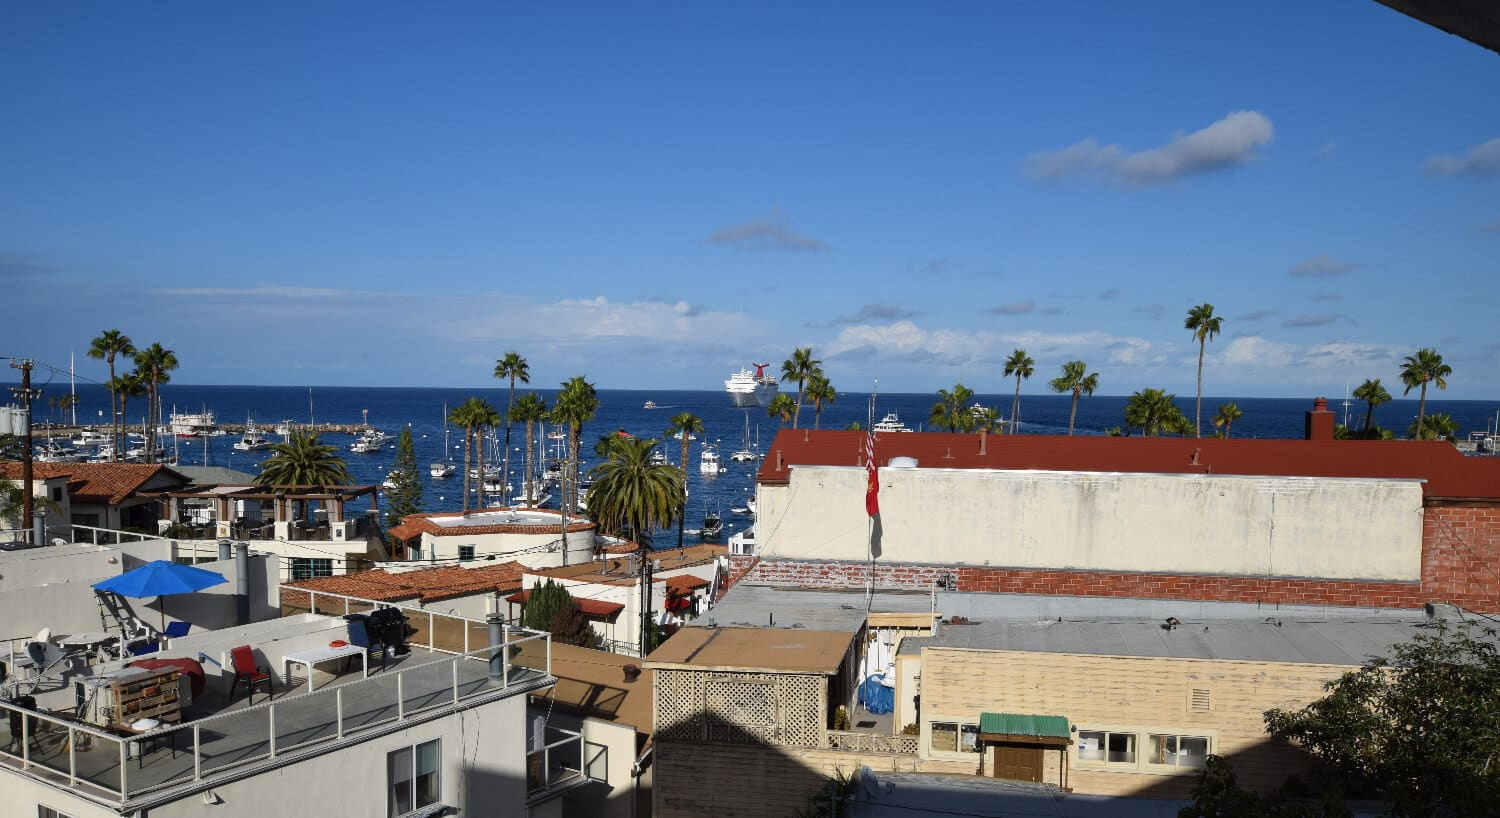 A view of the ocean over rooftops from the balcony of the Hotel Catalina